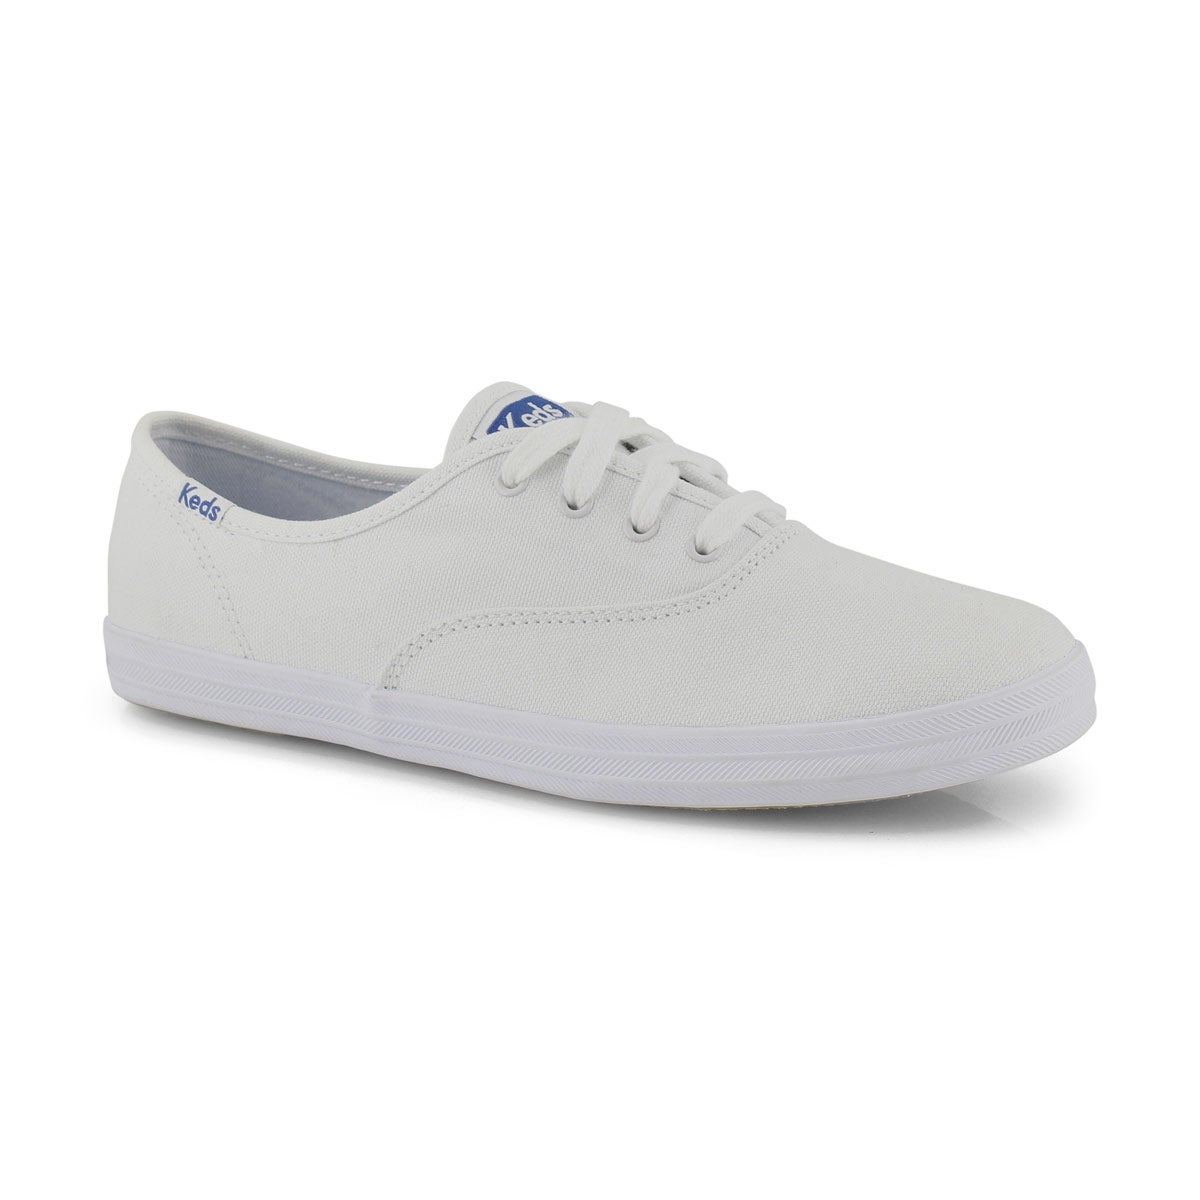 Girls' CHAMPION white canvas sneakers